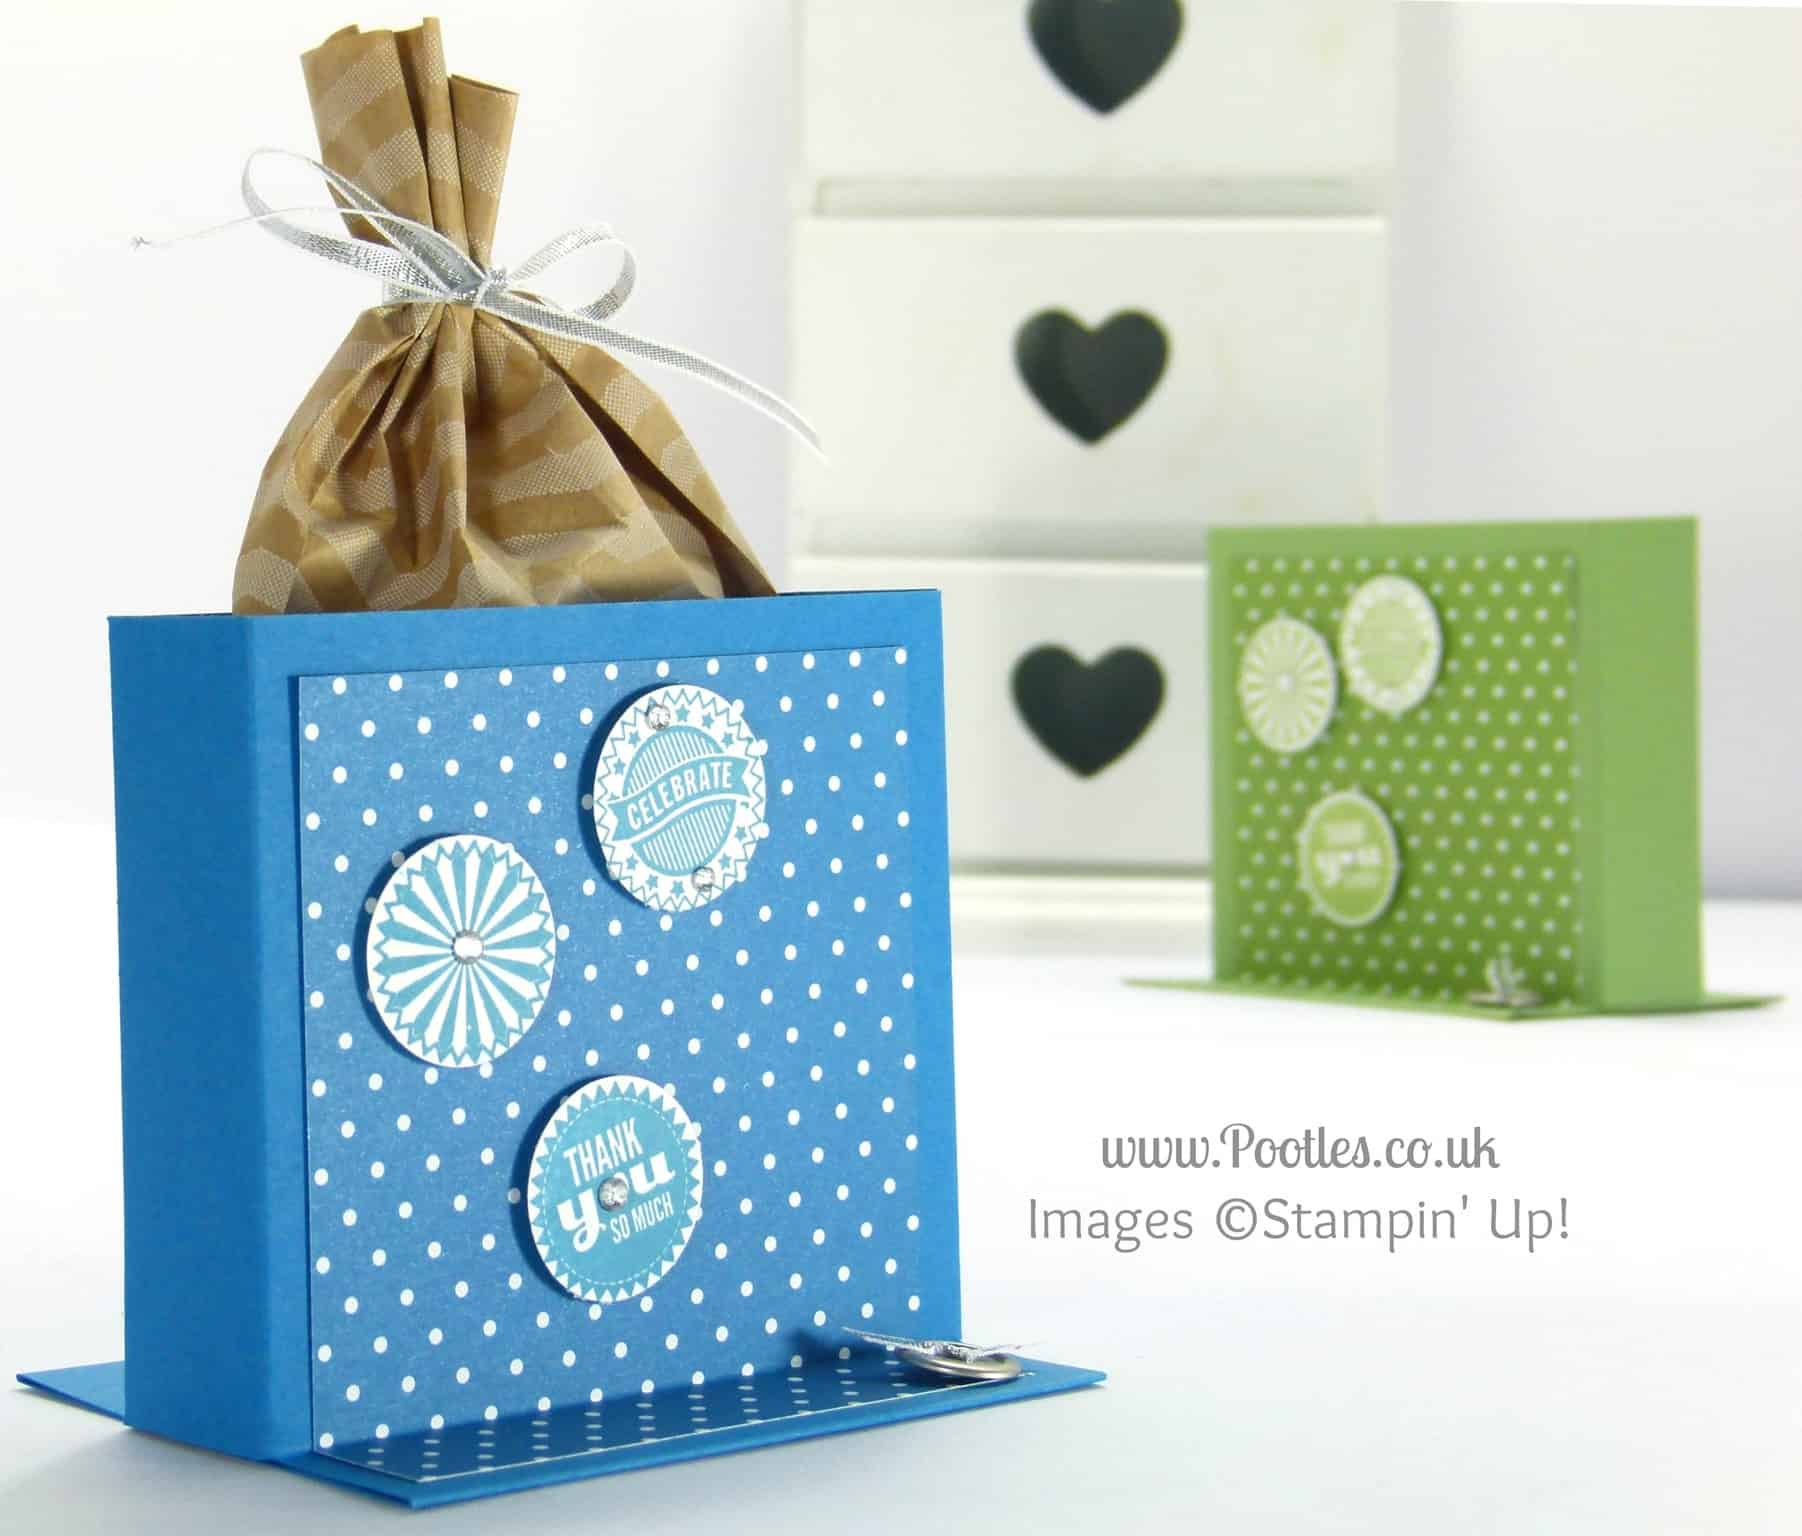 Stampin' Up! UK Independent Demonstrator Pootles - Freestanding Treat Bag Holder Tutorial